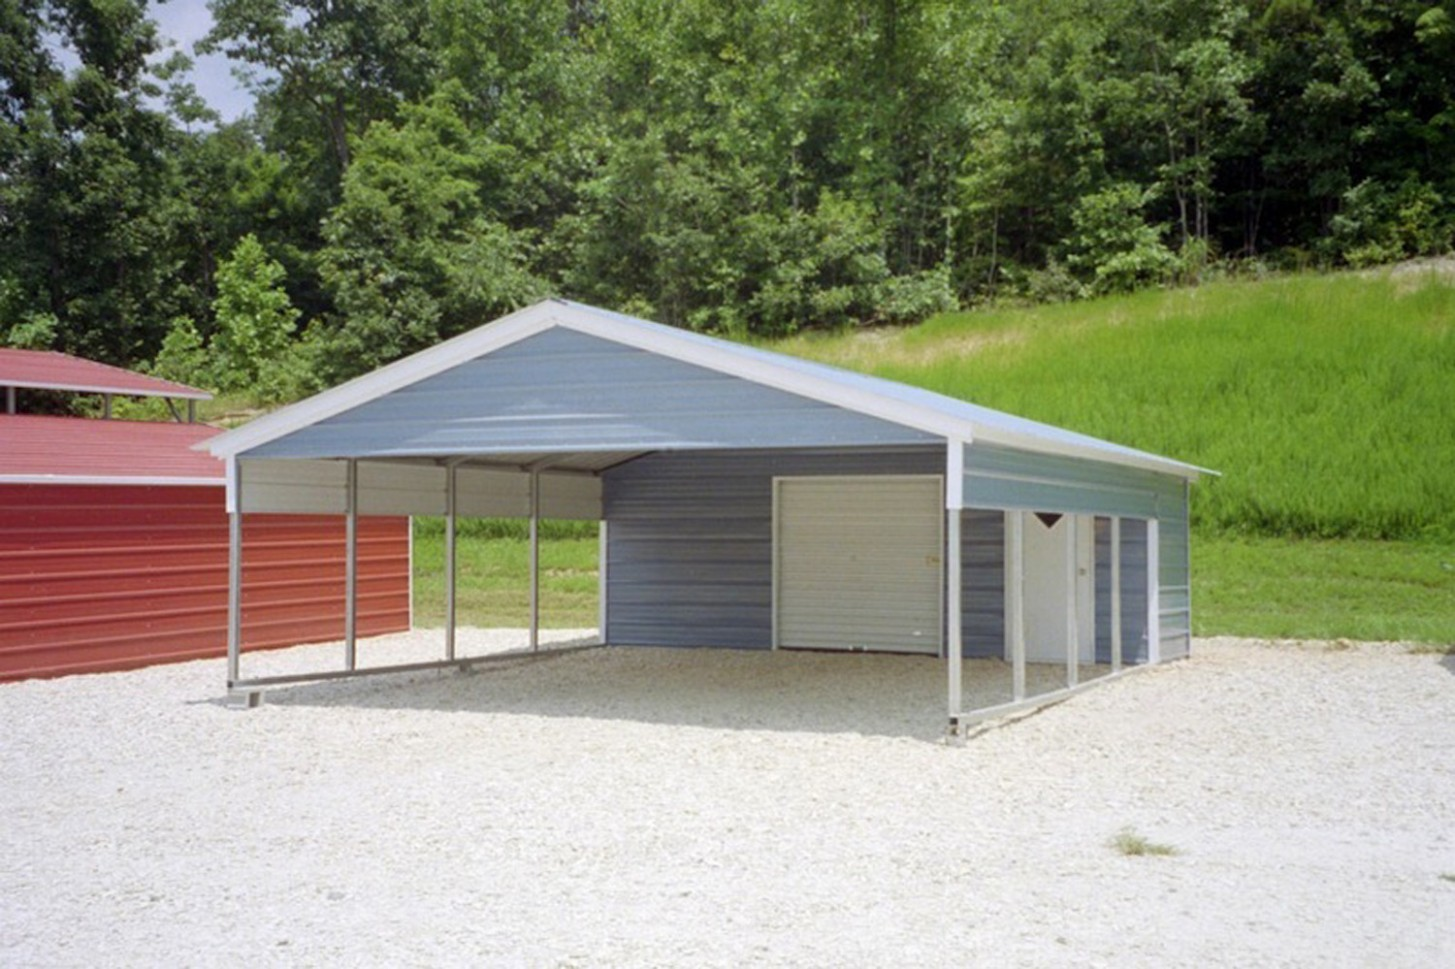 8 Questions To Ask At Single Car Carport Kits | single car carport kits